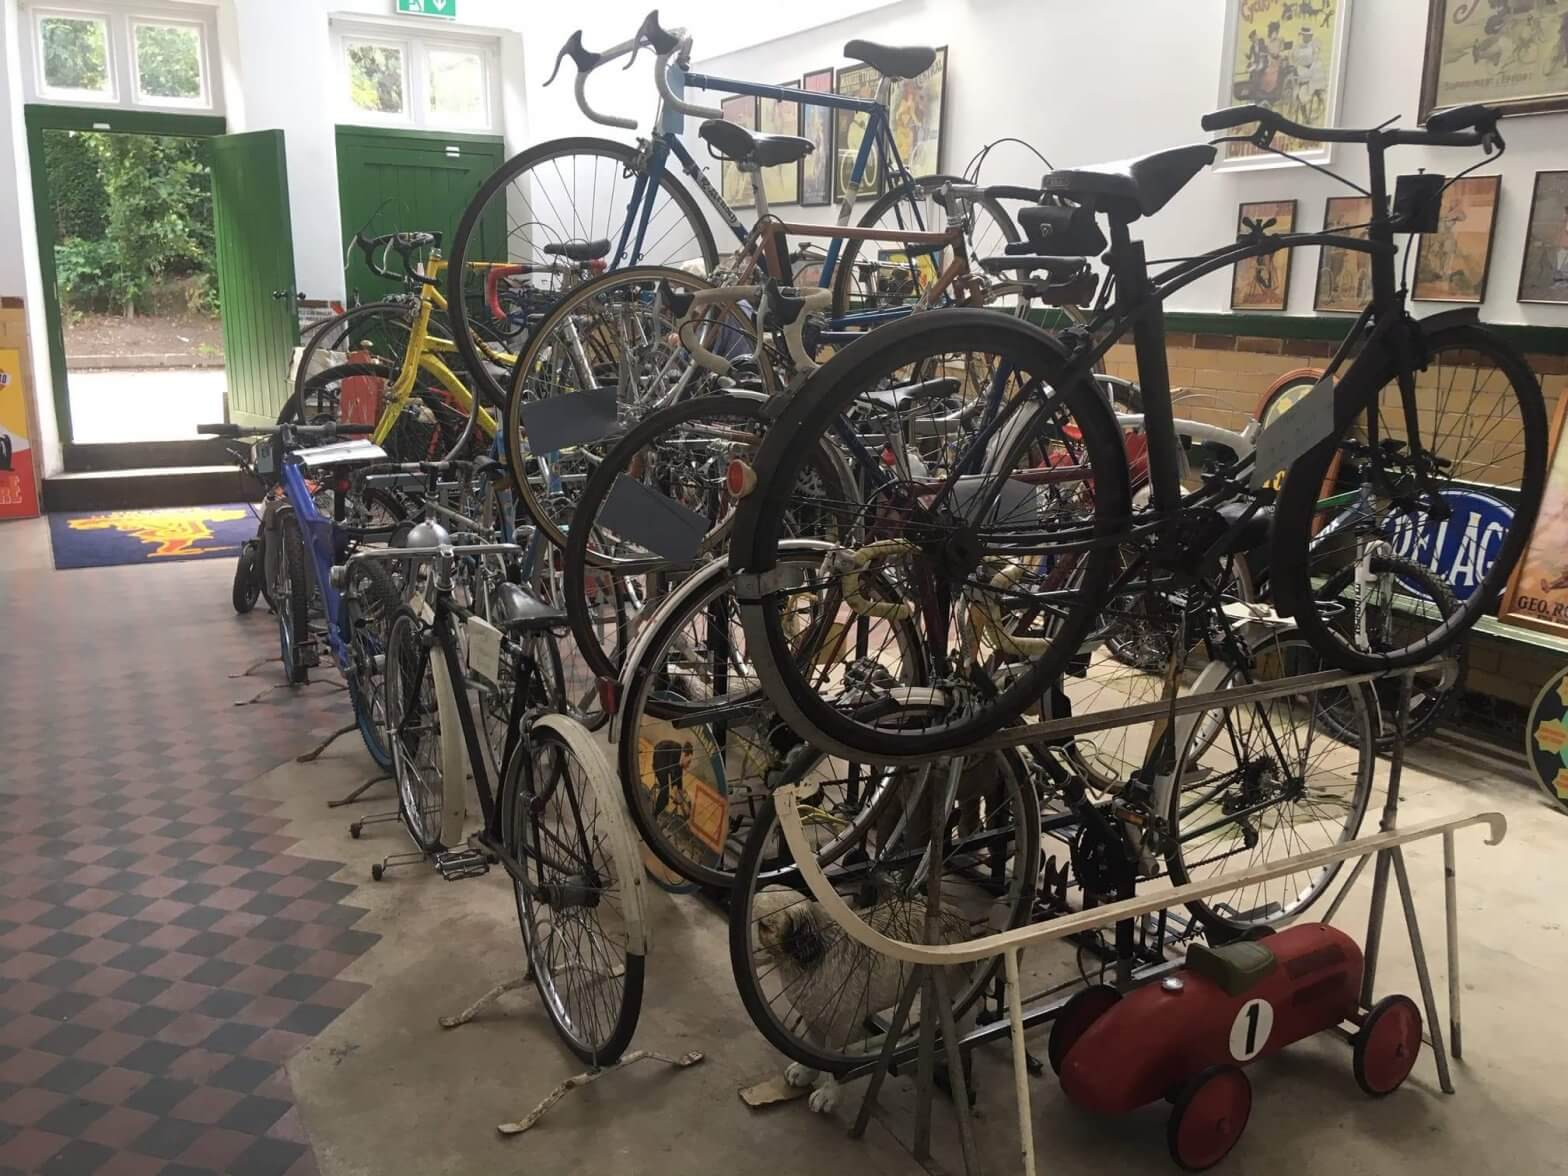 Bikes on display at the Cycle Museum at Walton Hall and Gardens